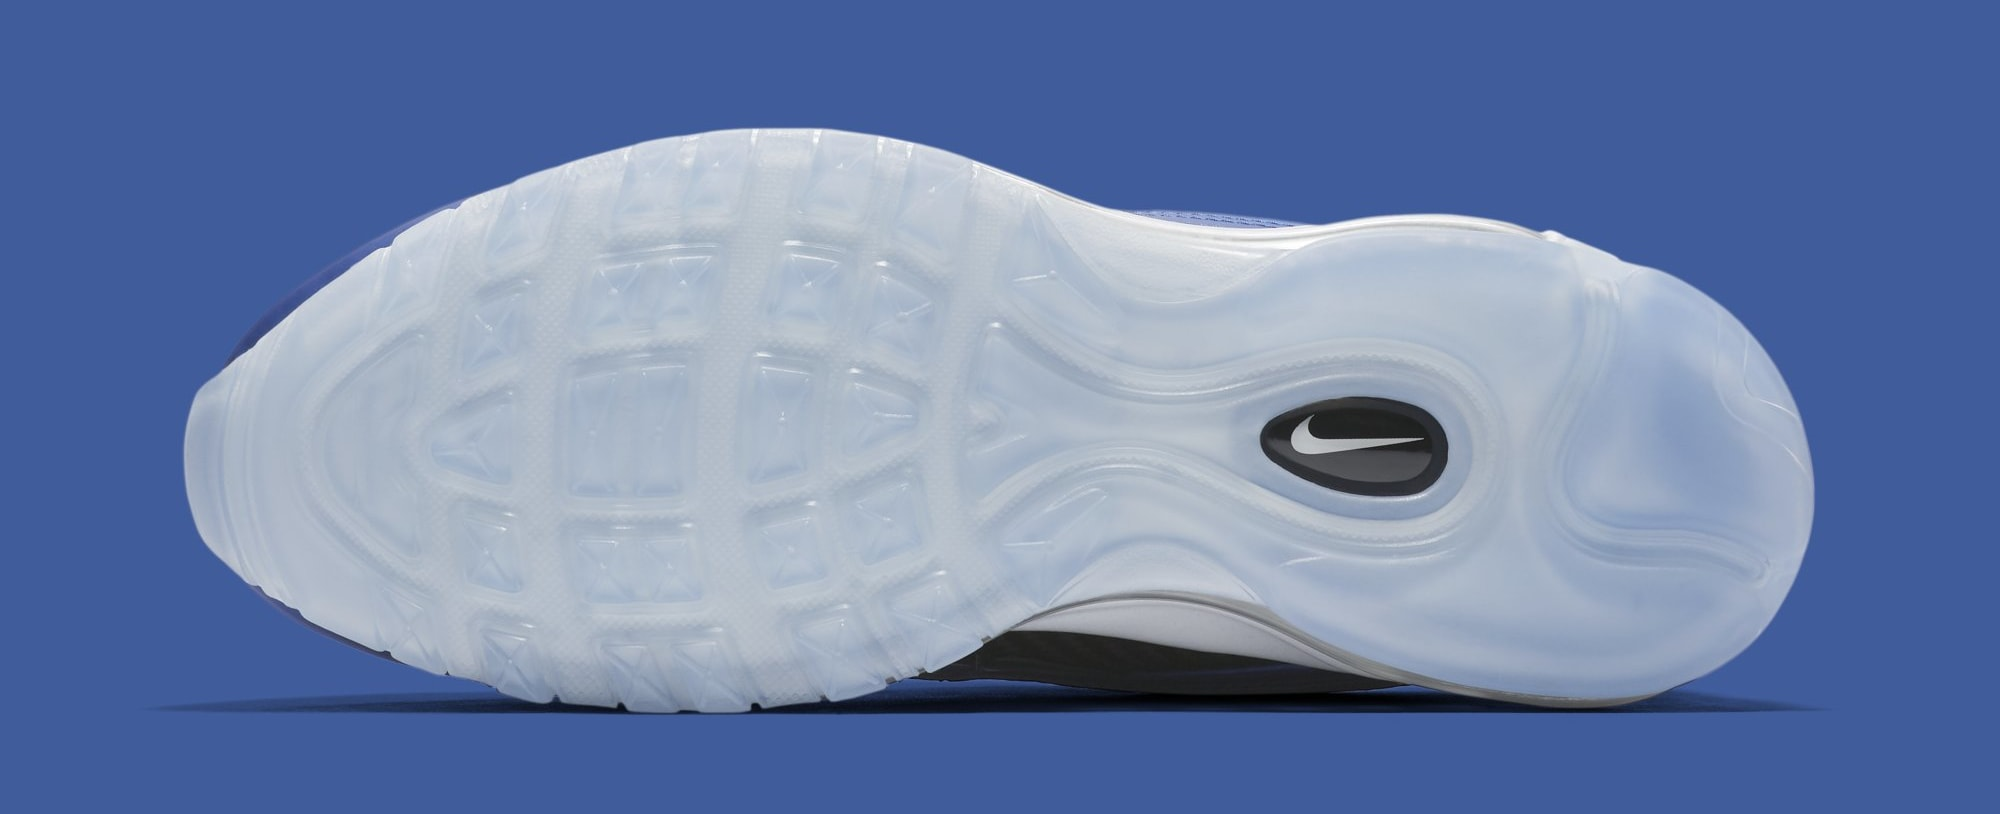 Nike Air Foamposite One Mirror AllStar 2015Release Date ...